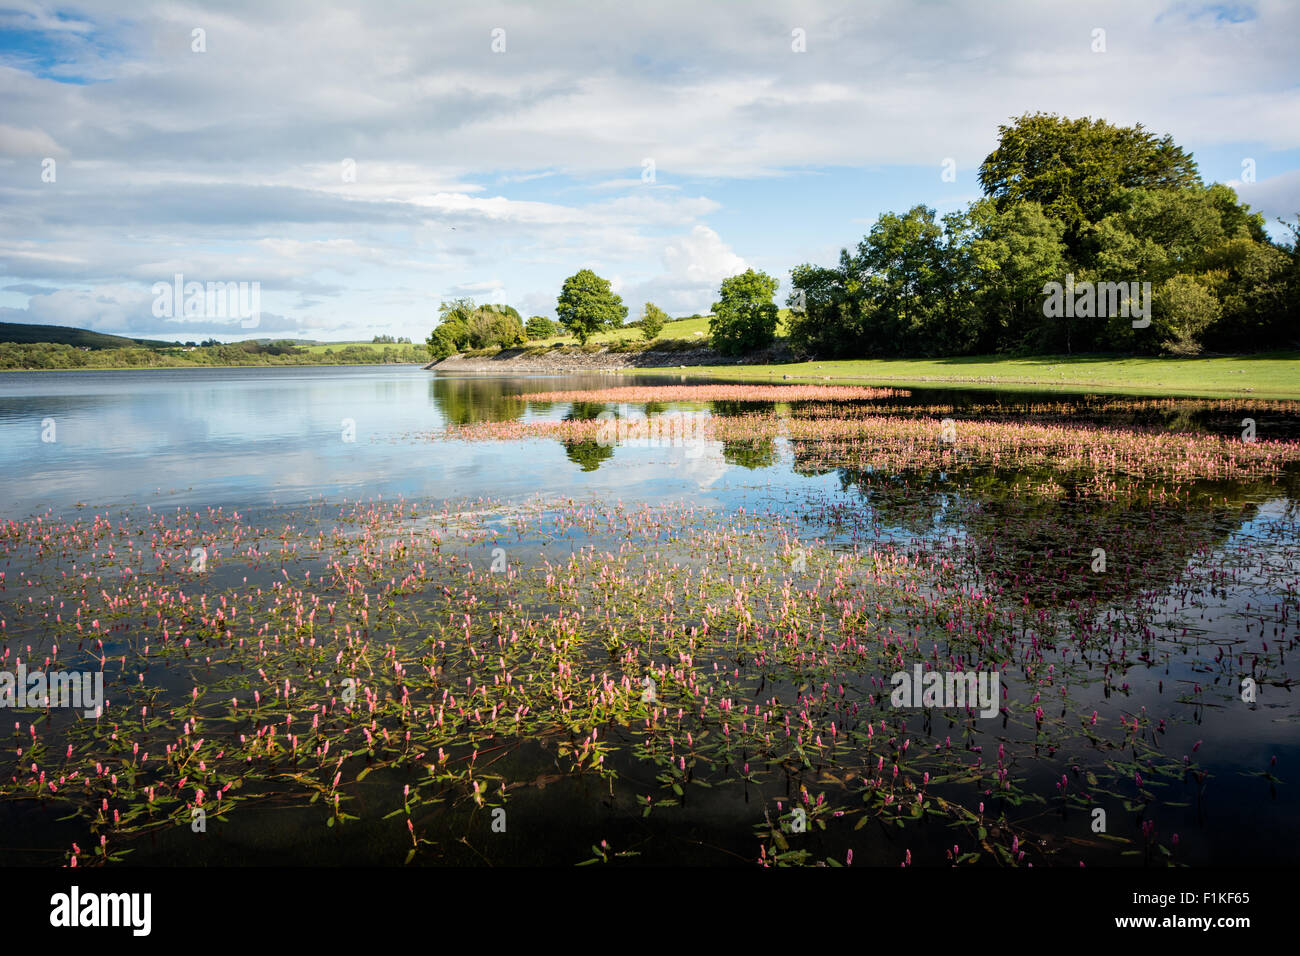 Sunny summer day at the lake - Stock Image